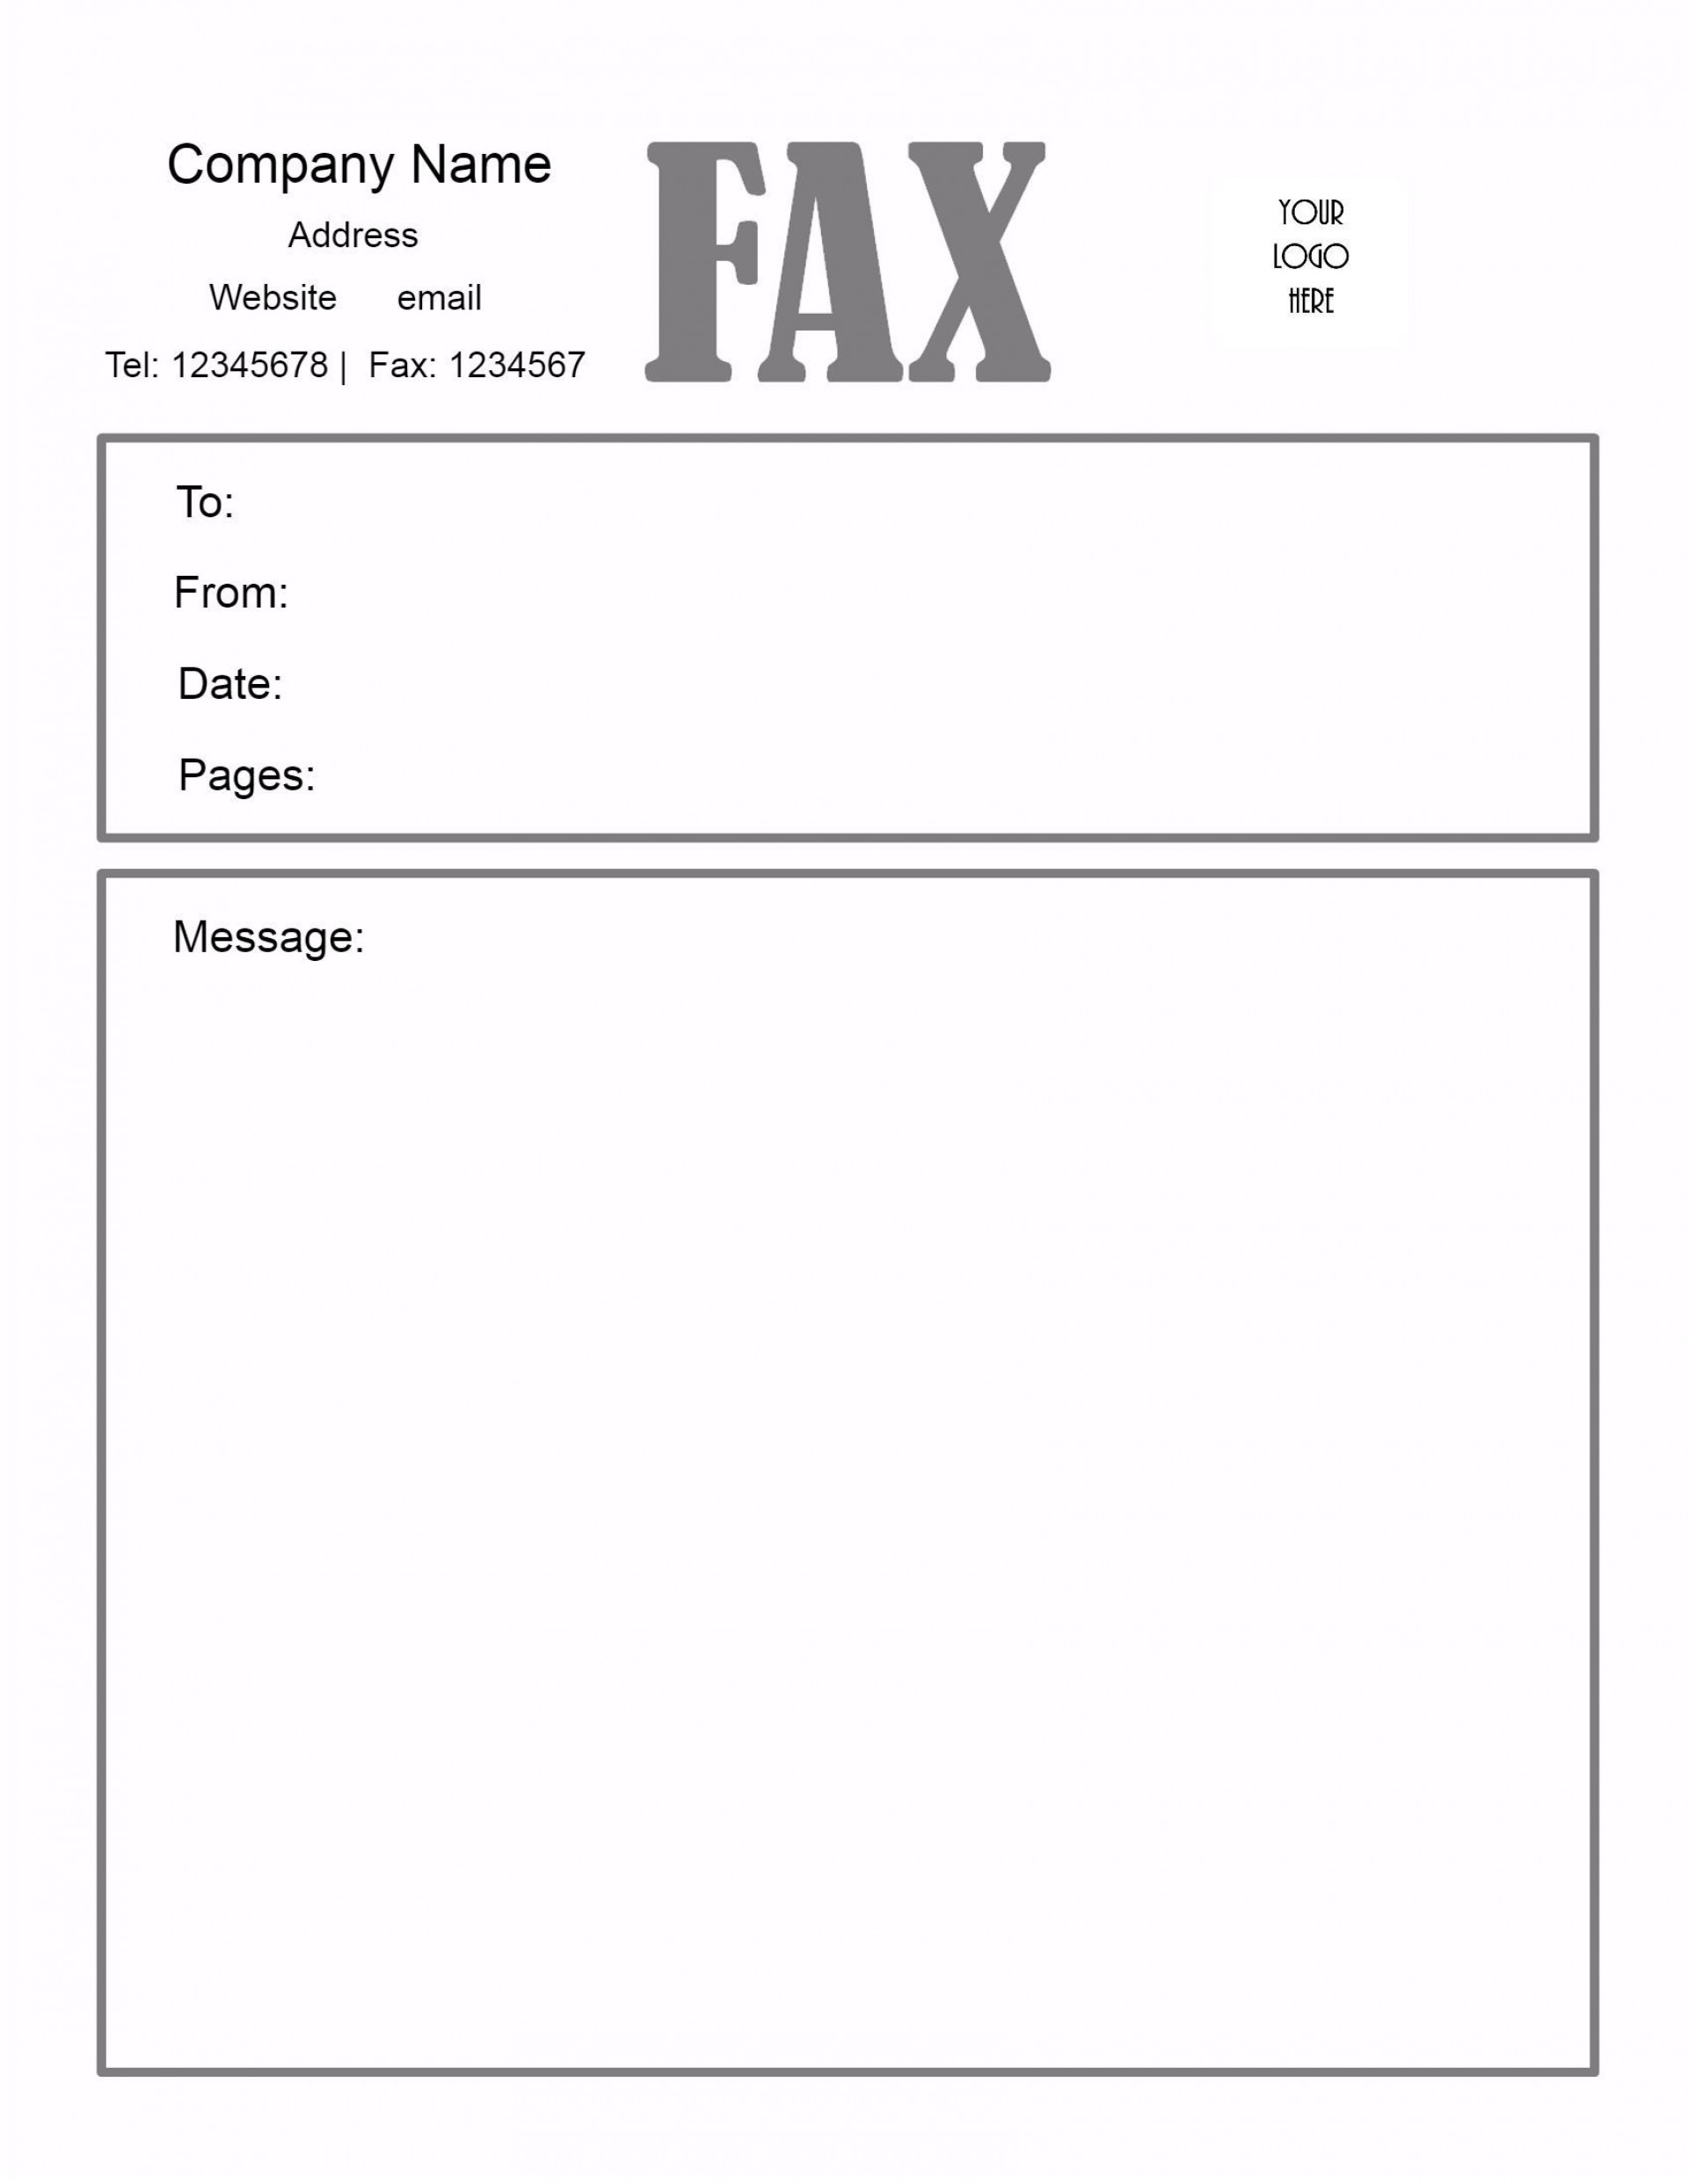 005 Awesome General Fax Cover Letter Template Inspiration  Sheet Word Confidential Example1920